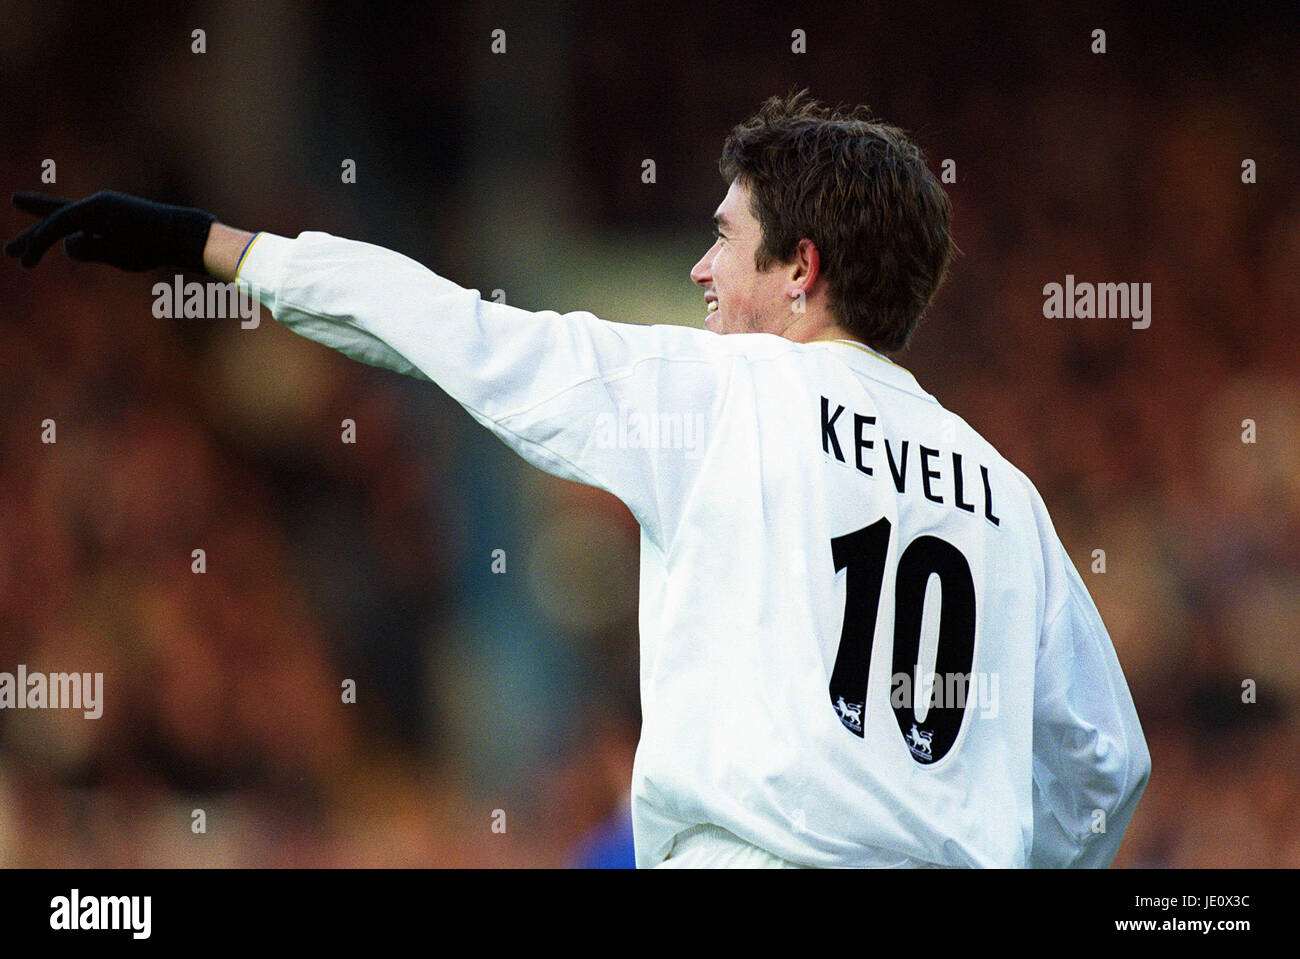 Page 3 Harry Kewell High Resolution Stock Photography And Images